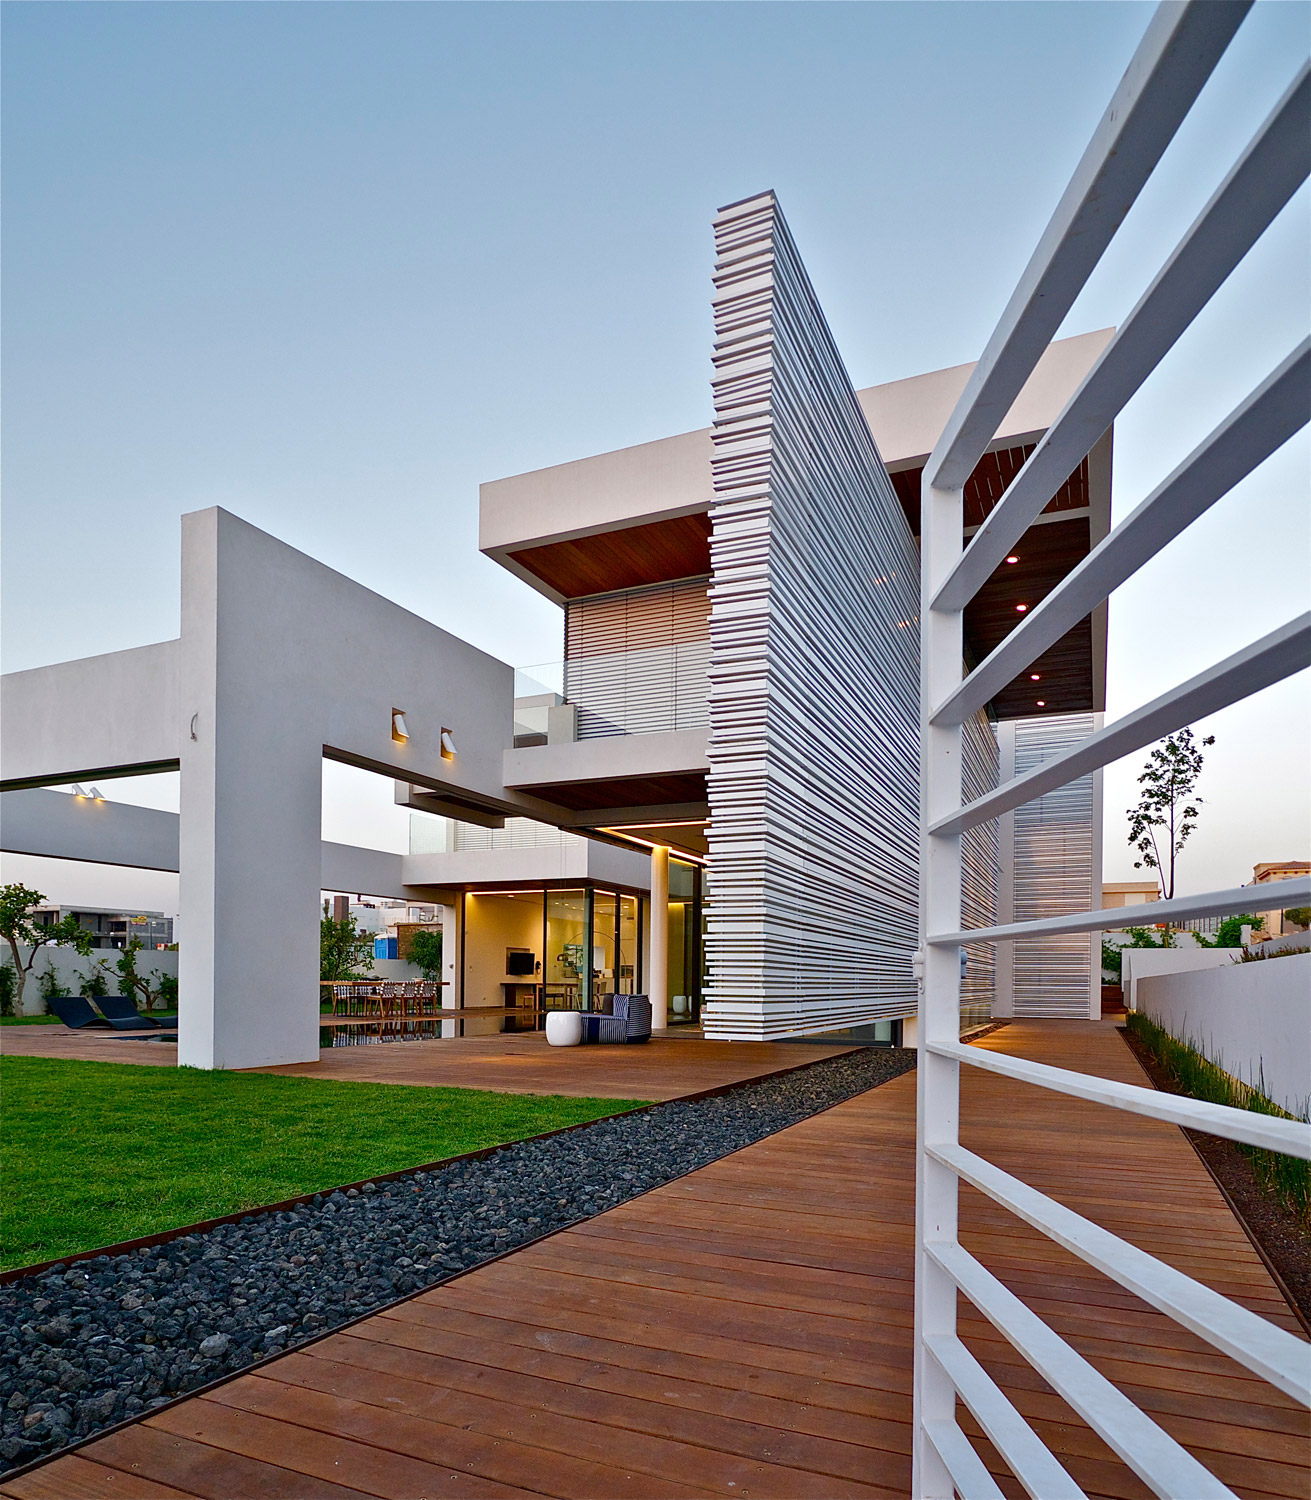 Modern luxury villas designed by gal marom architects for Modern luxury villa design